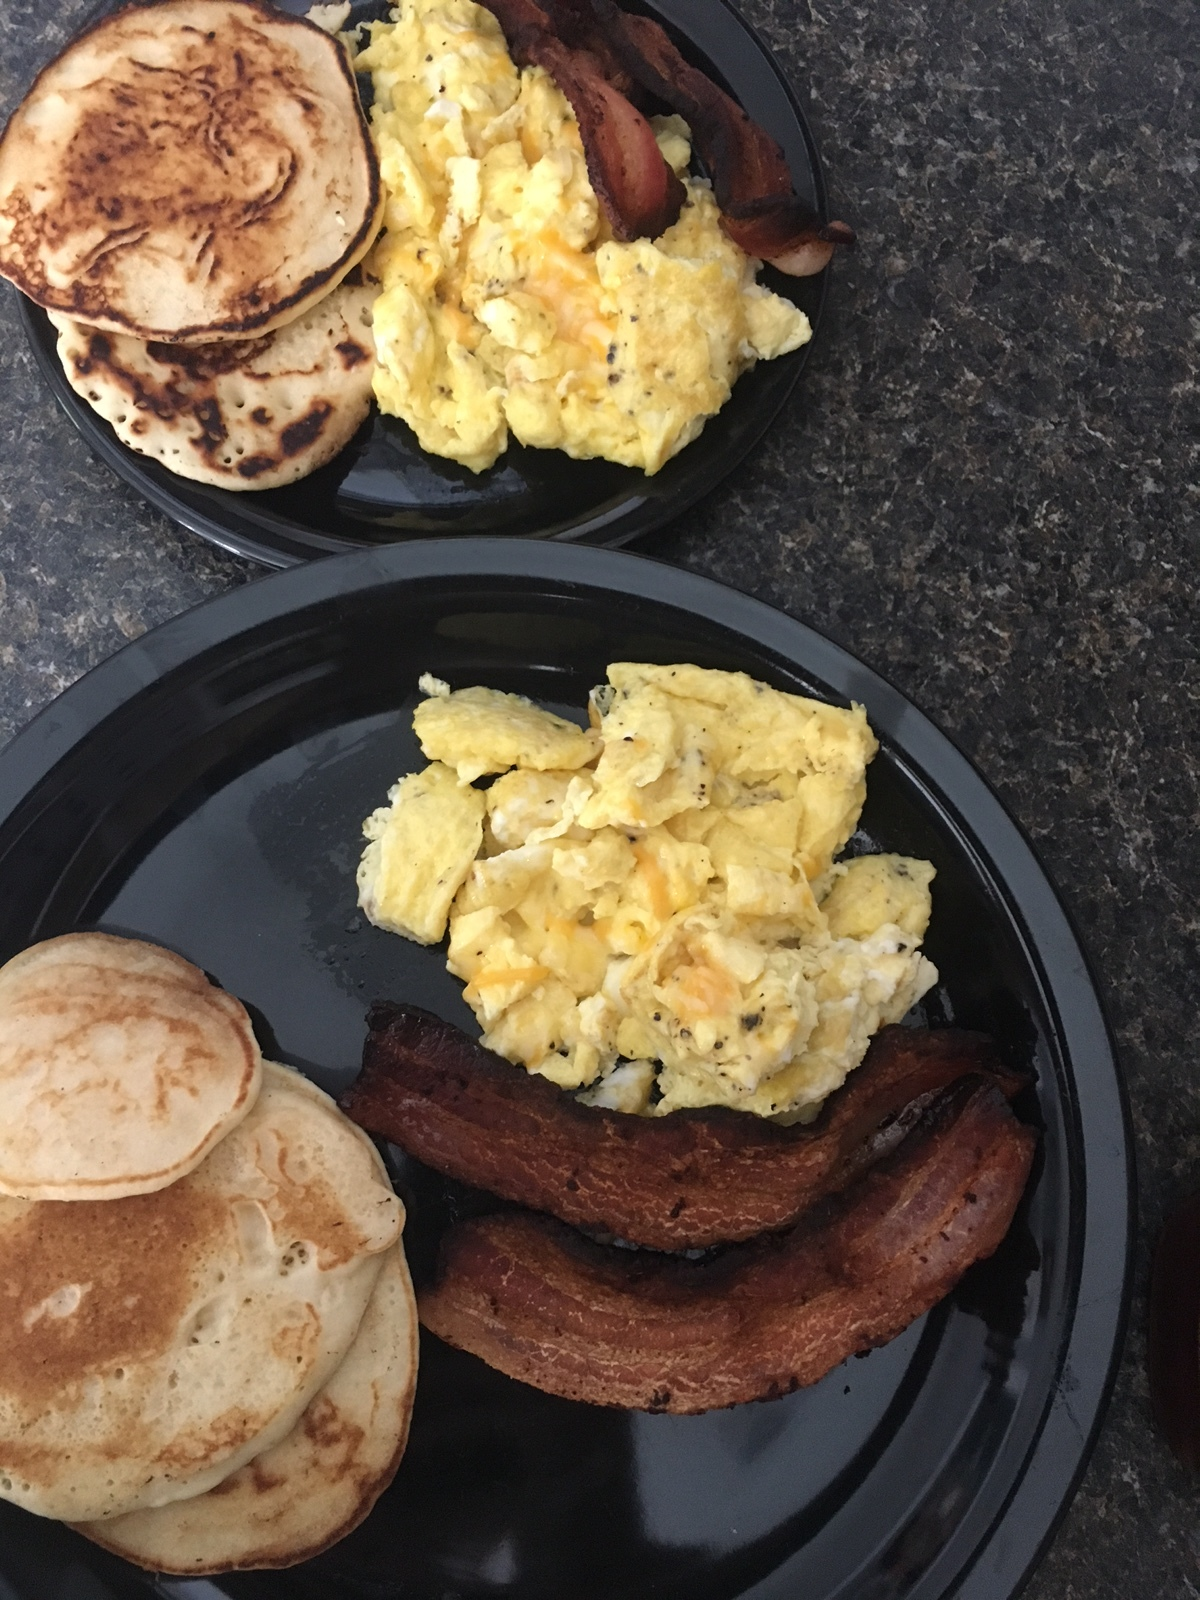 Protein pan cakes and the classic Ky Darling bacon and eggs